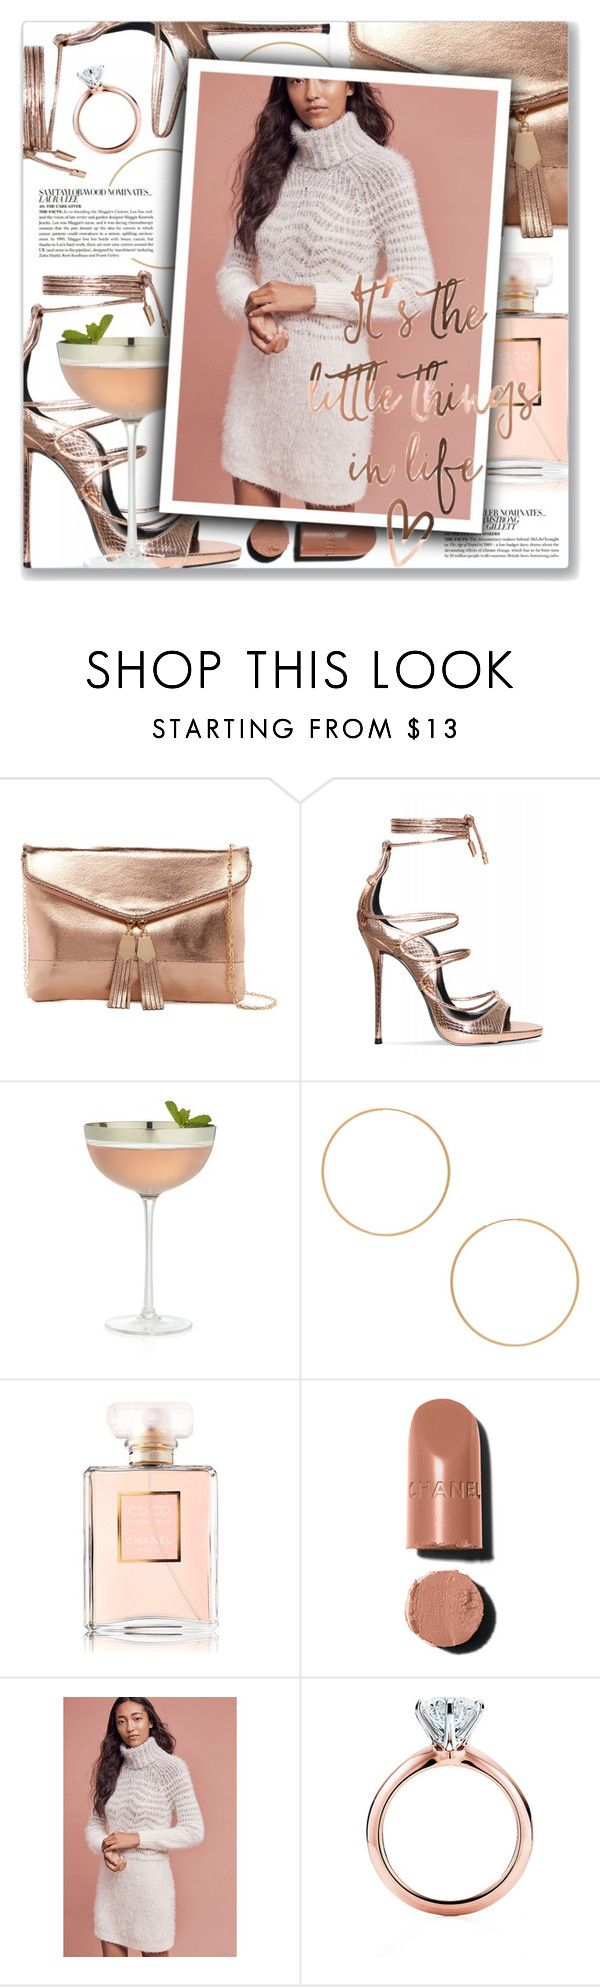 """Eres, Café Tacvba"" by blendasantos ❤ liked on Polyvore featuring Urban Expressions, Crate and Barrel, ERTH, McGinn, Chanel, Sleeping on Snow, Tiffany & Co., rosegold and under100"